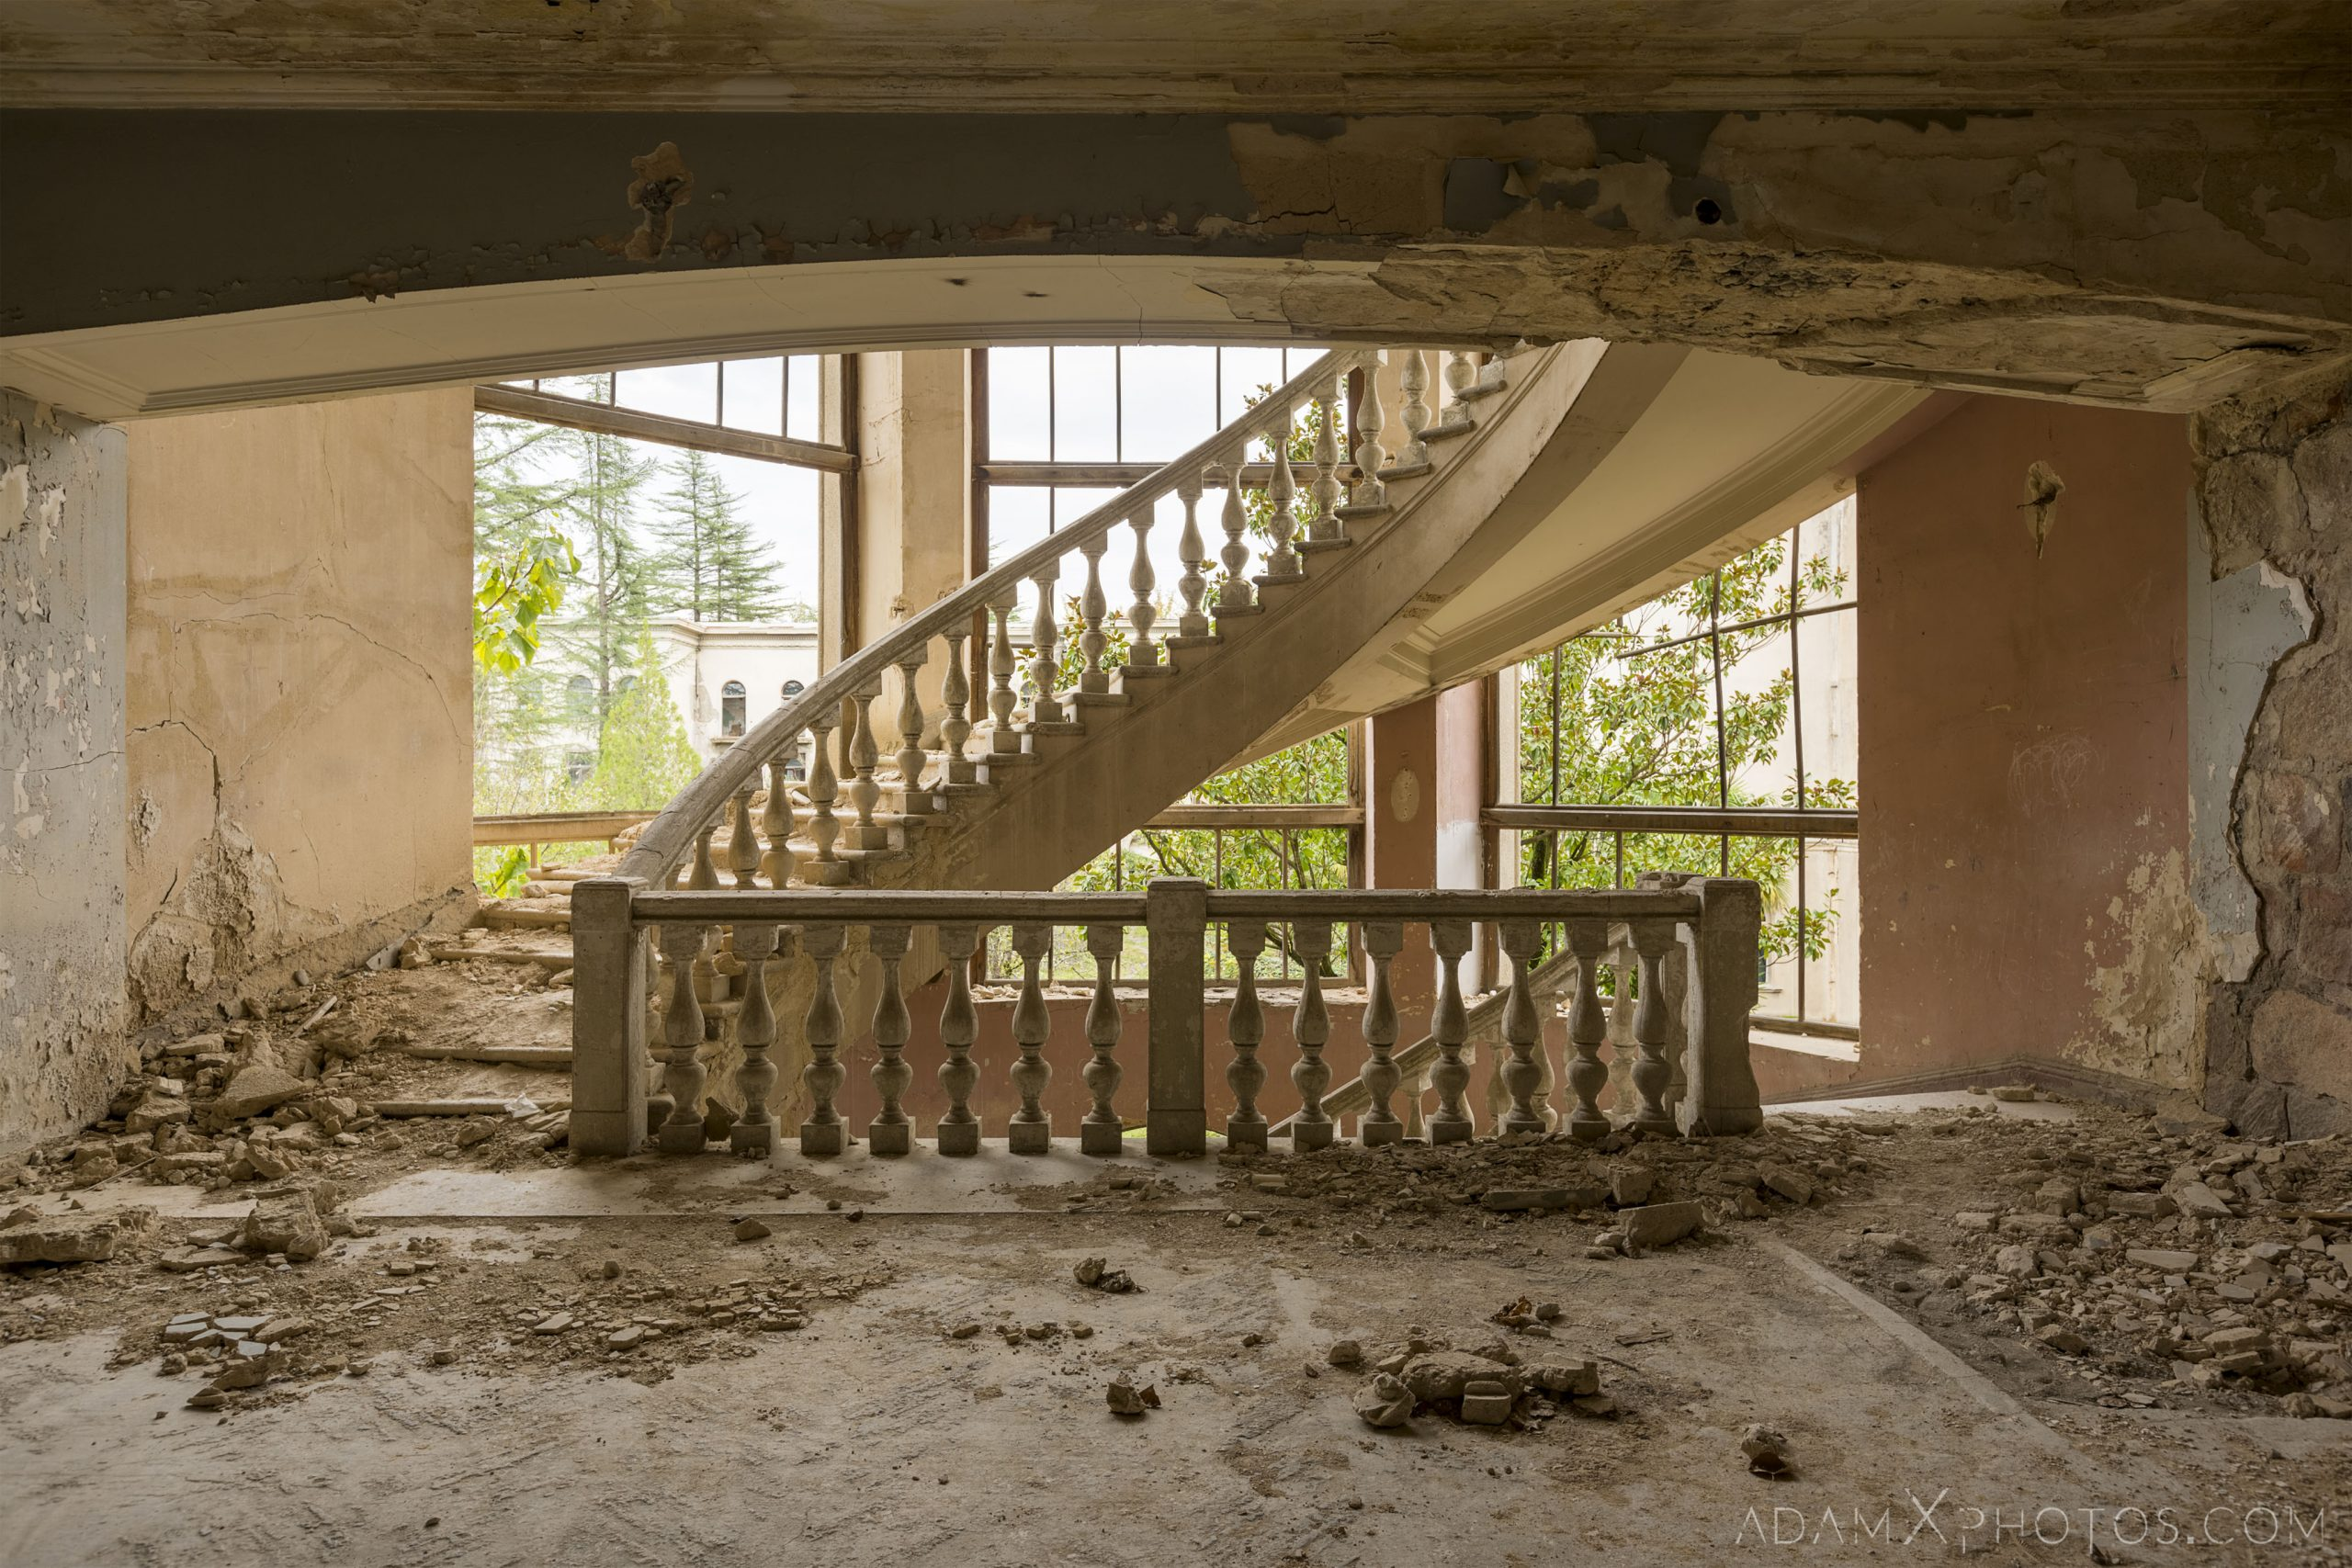 ornate staircase stairs Sanatorium Imereti Tskaltubo Georgia Soviet era Adam X Urbex Urban Exploration 2018 Abandoned Access History decay ruins lost forgotten derelict location creepy haunting eerie security